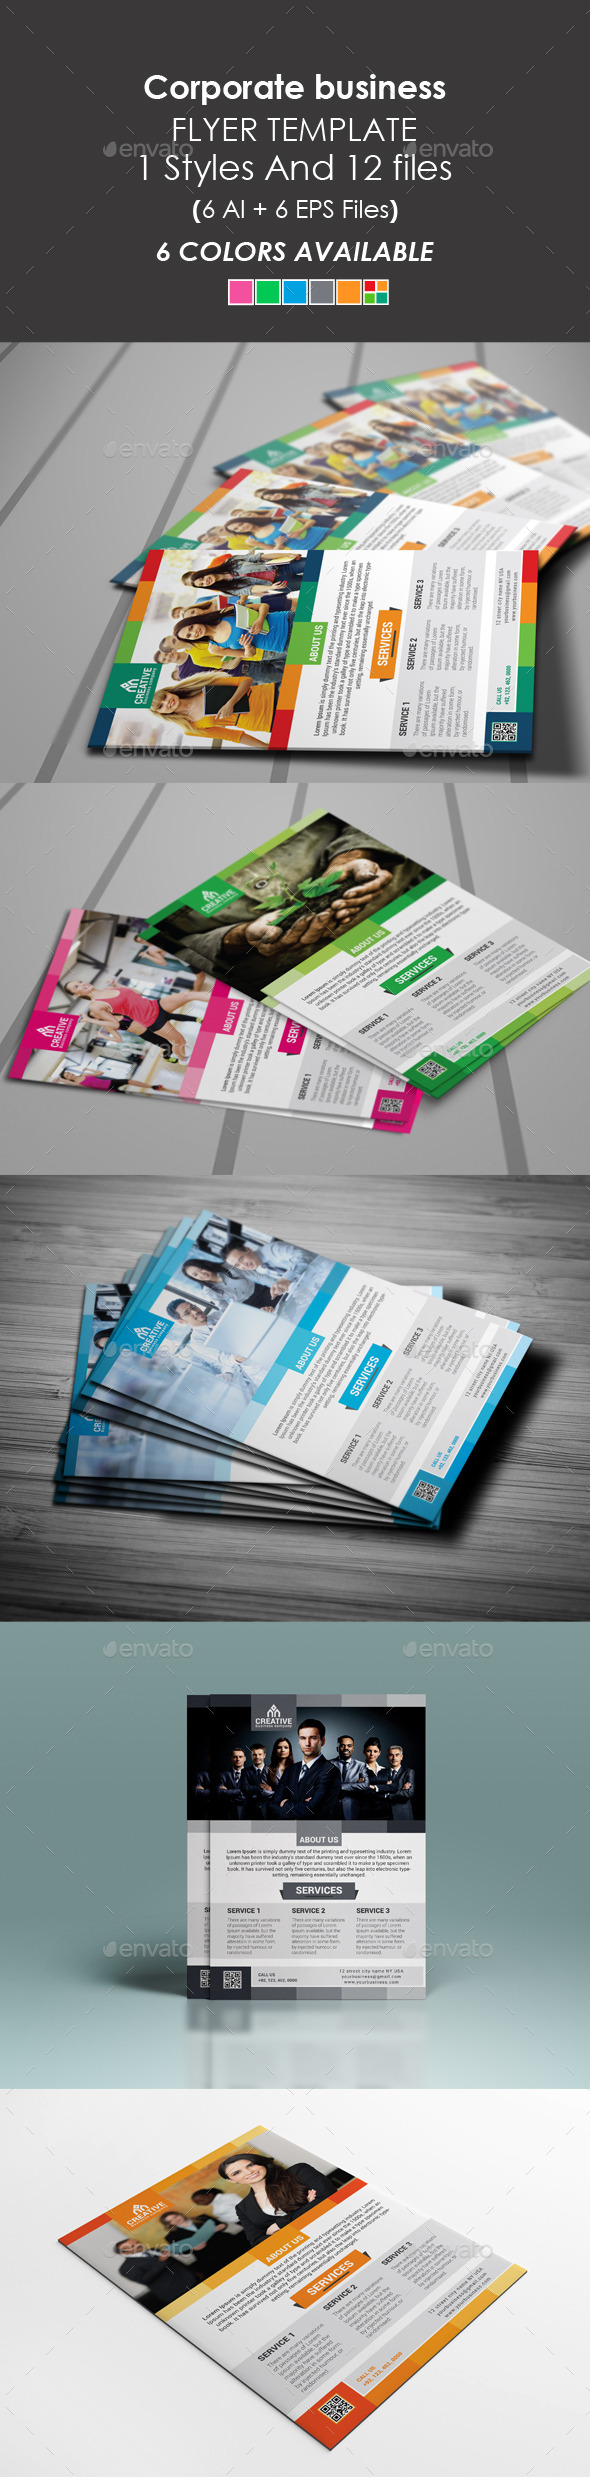 GraphicRiver Corporate Business Flyer 9345154